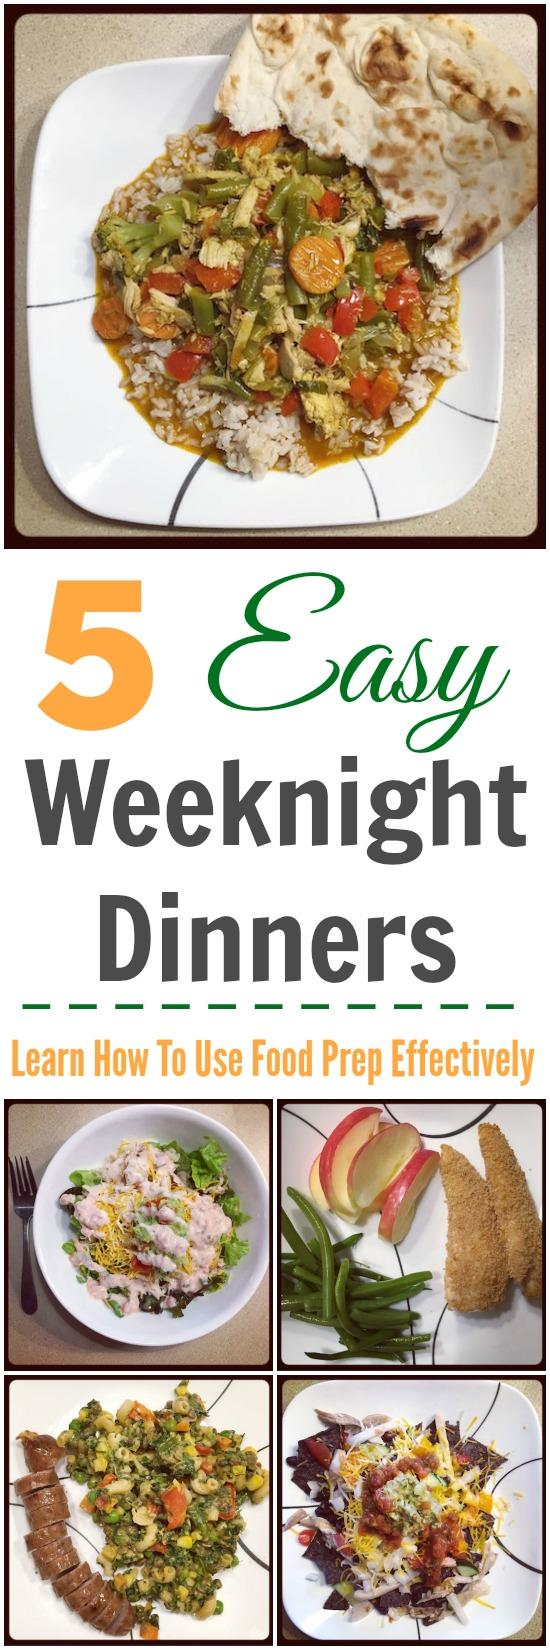 Need quick and easy weeknight dinners? Learn how to use food prep effectively to make it easy to throw together healthy and delicious weeknight meals!